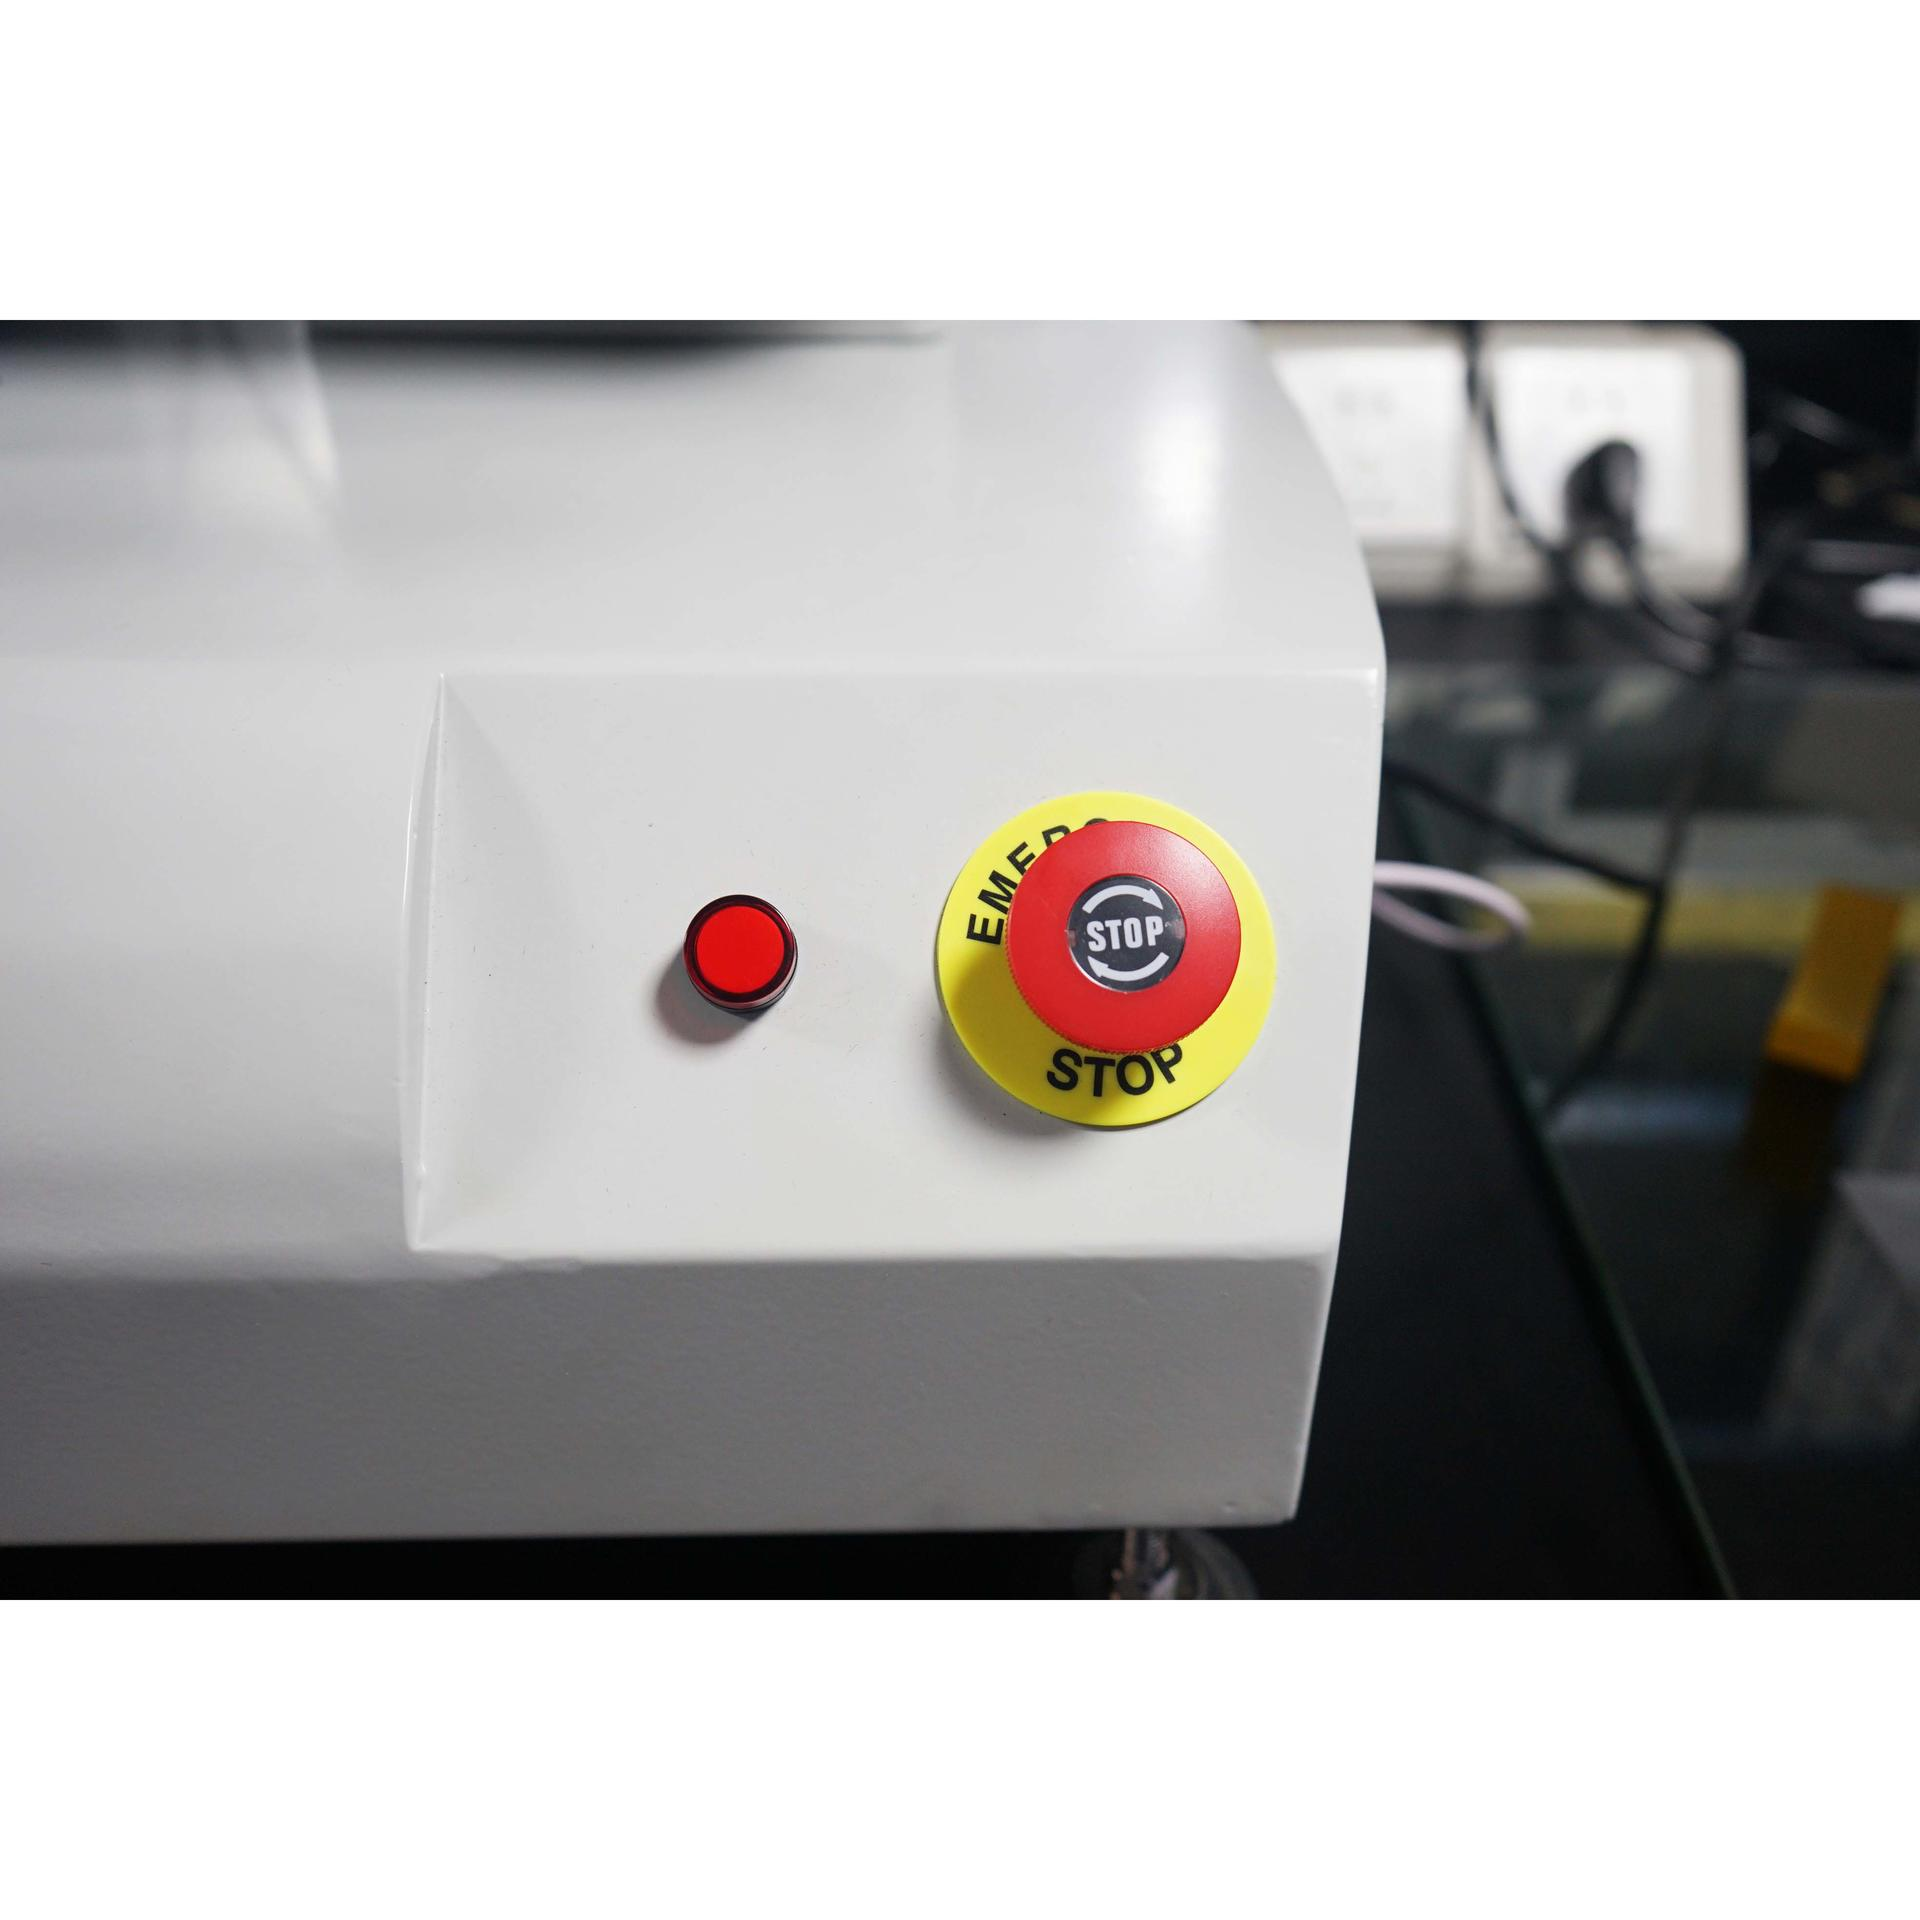 adhesive tape peel test units